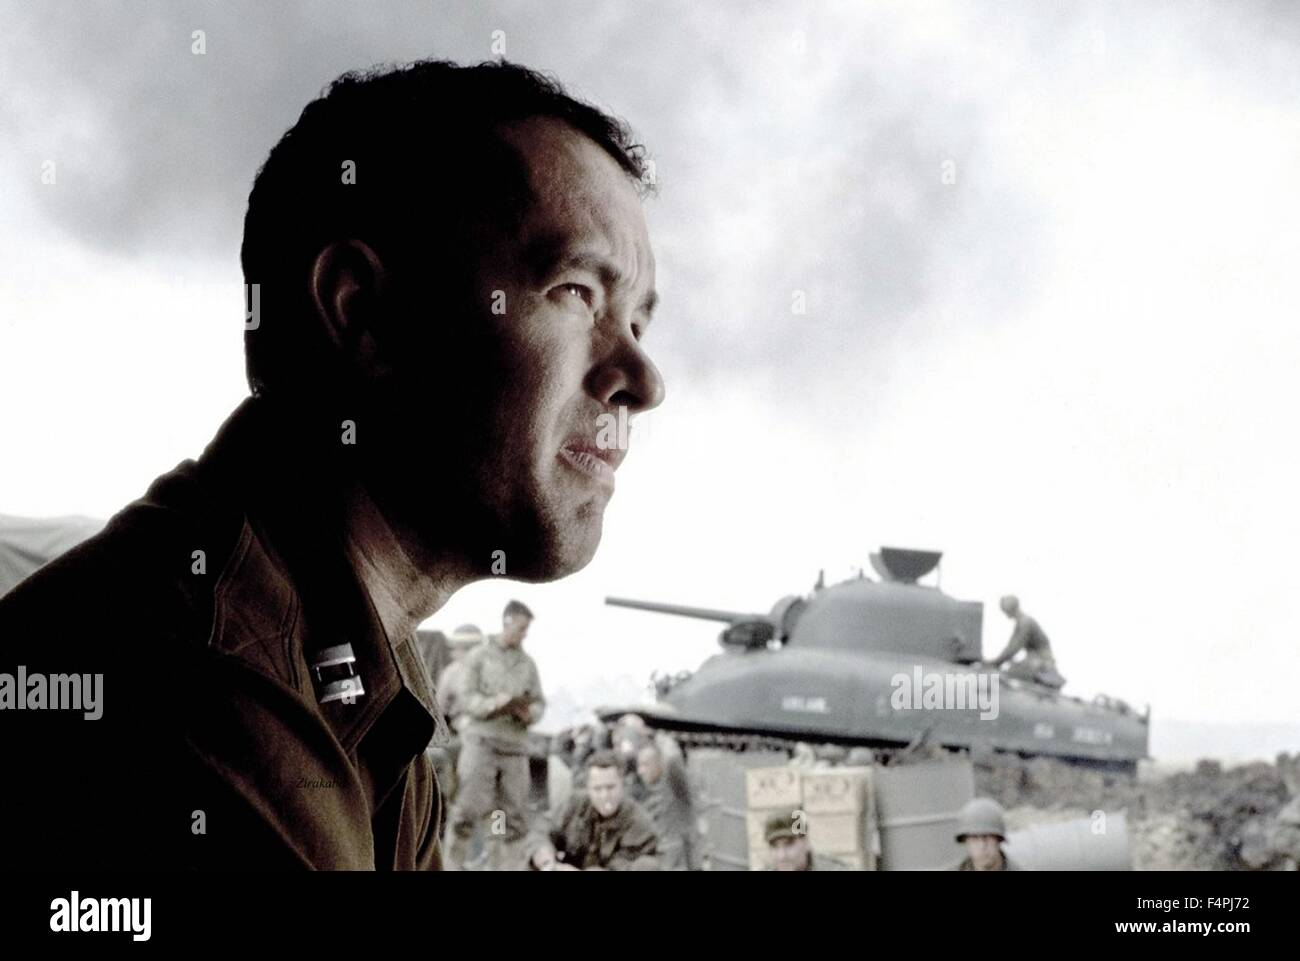 Tom Hanks / Saving Private Ryan / 1998 directed by Steven Spielberg [Dreamworks LLC /Paramount Pictures] - Stock Image